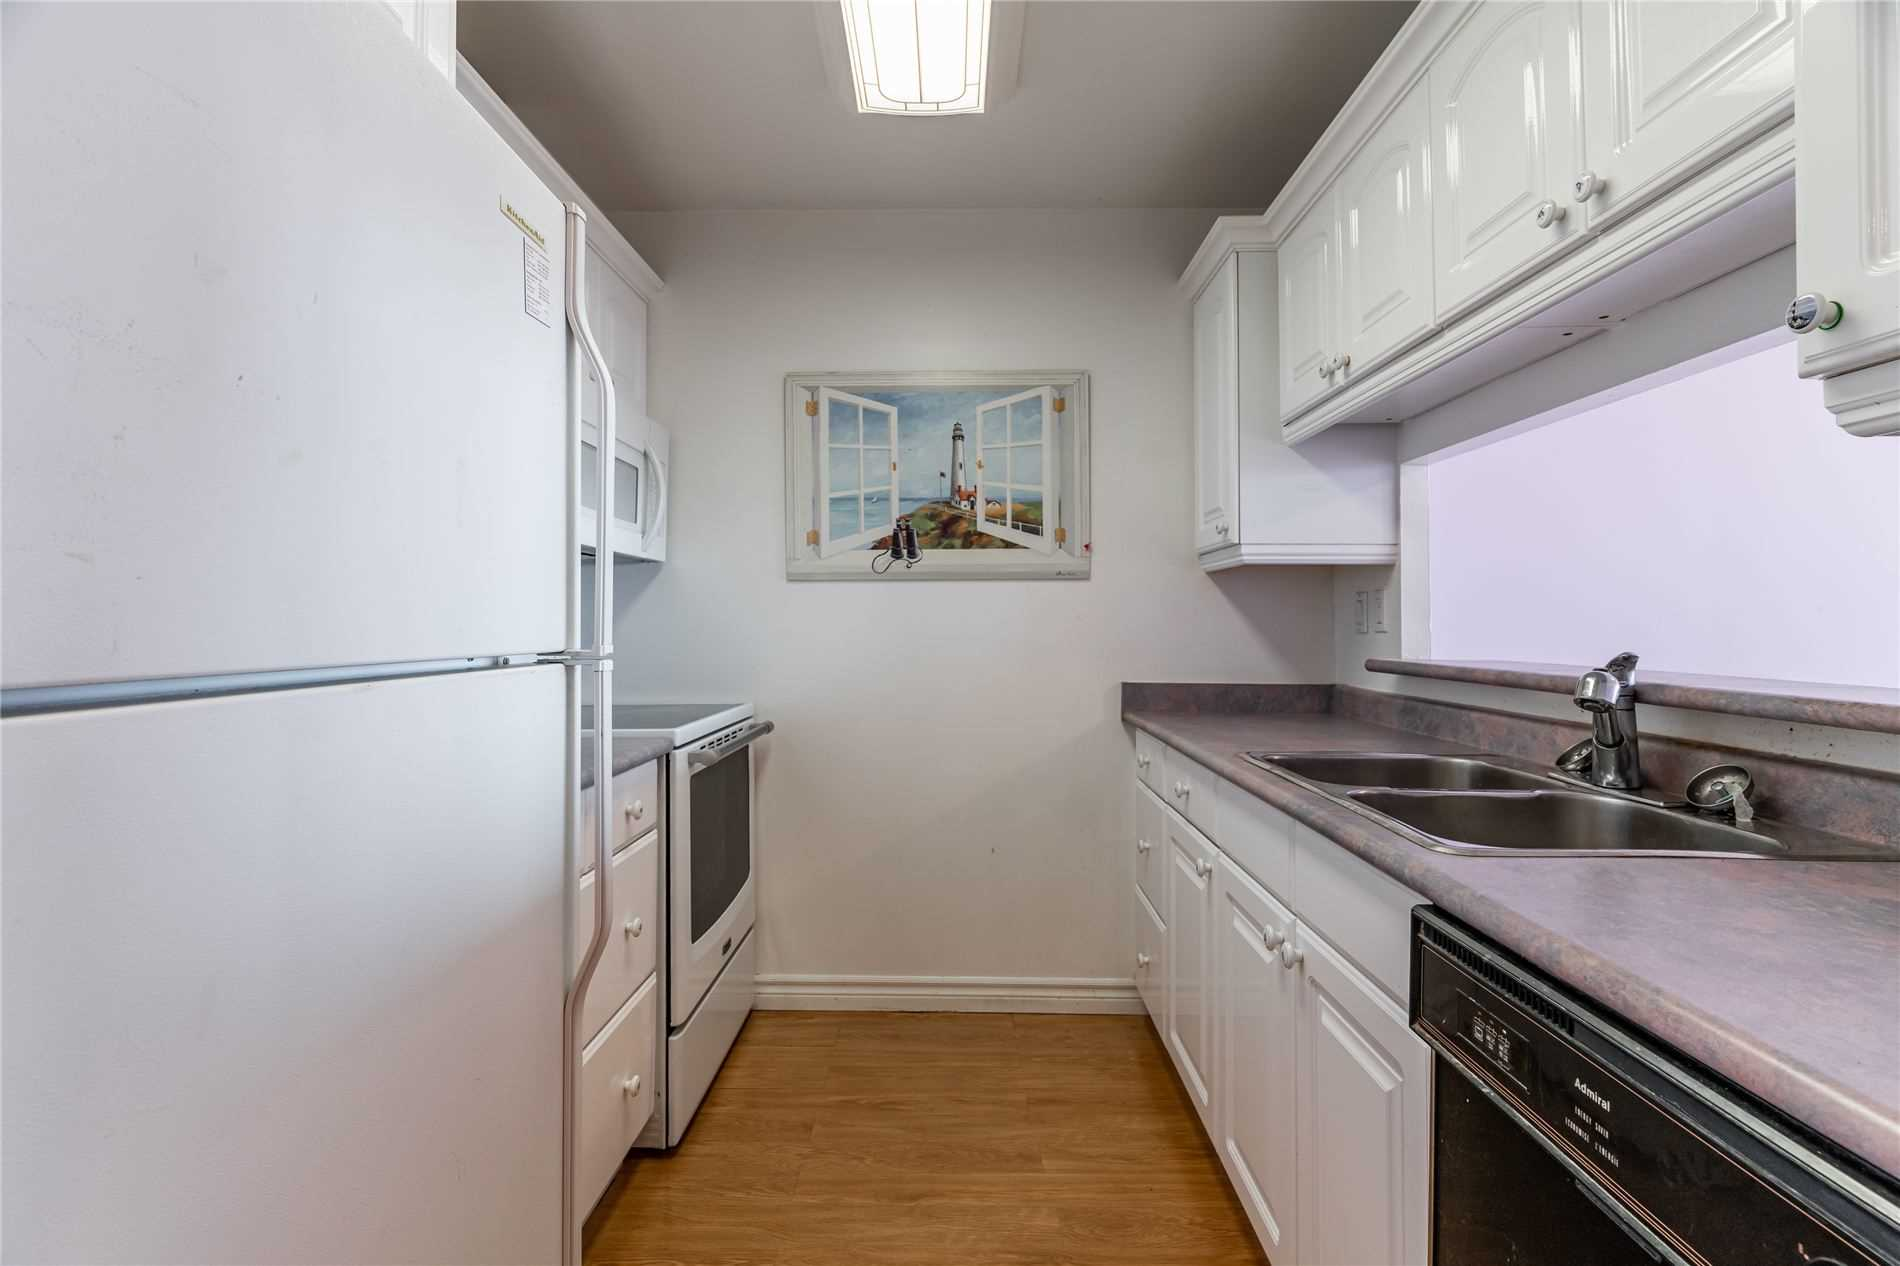 Image 39 of 40 showing inside of 2 Bedroom Condo Apt Apartment for Sale at 1665 Pickering Pkwy Unit# 812, Pickering L1V6L4